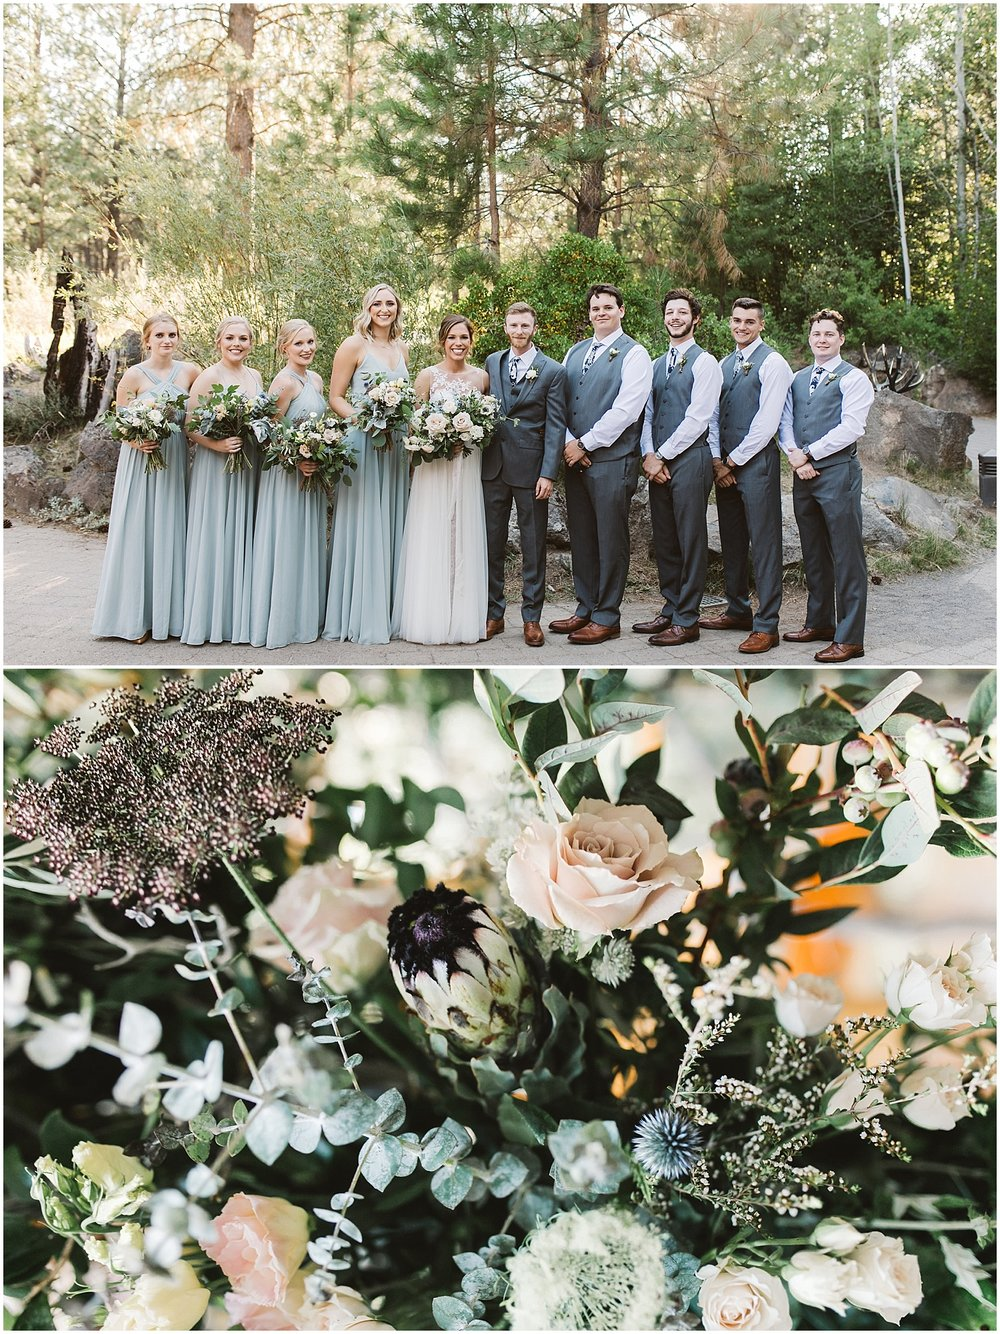 Wedding flowers and boutonnieres